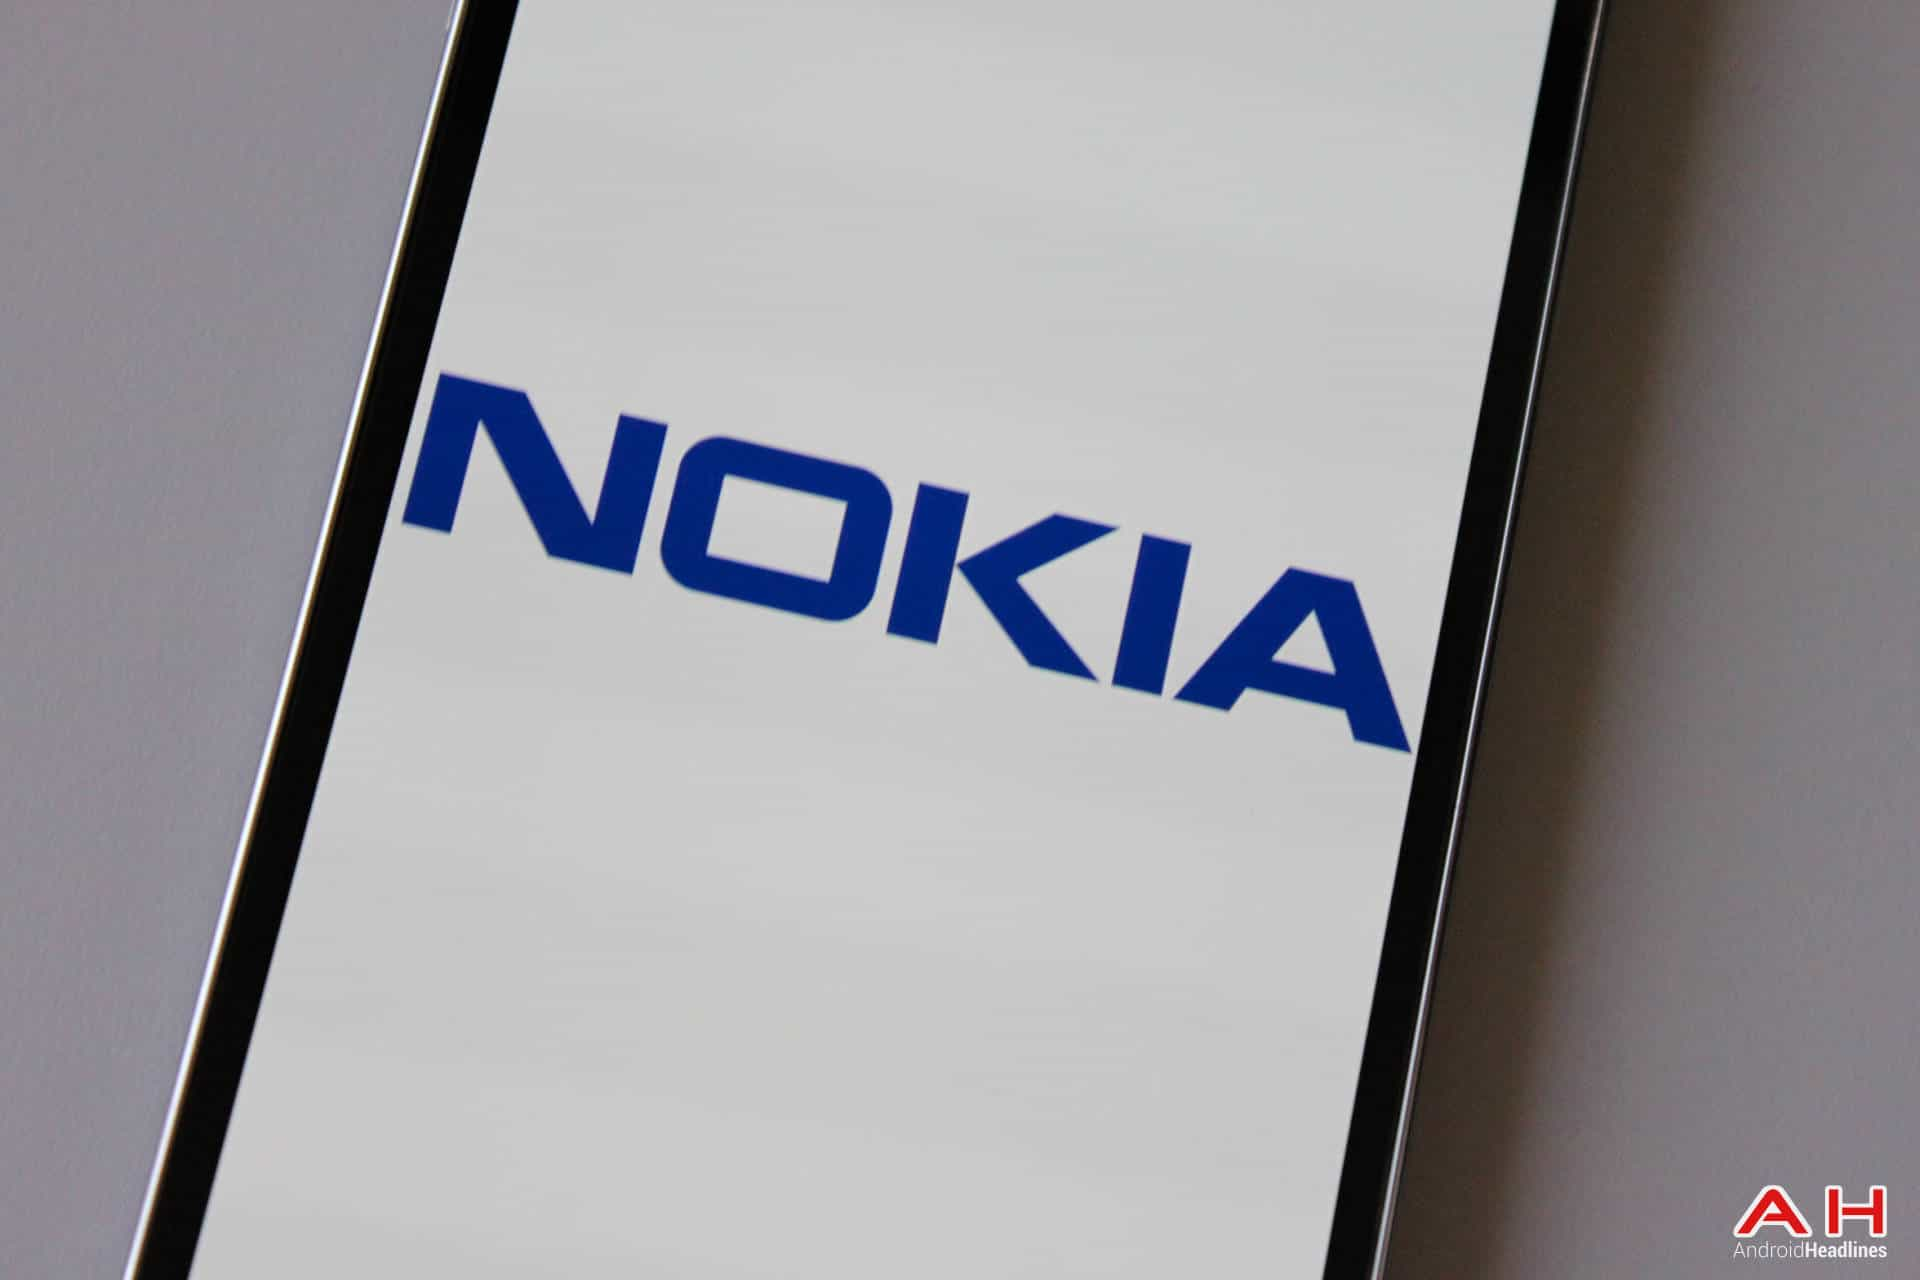 Nokia May be in the Android Business for the Long Haul, Job Postings Suggest